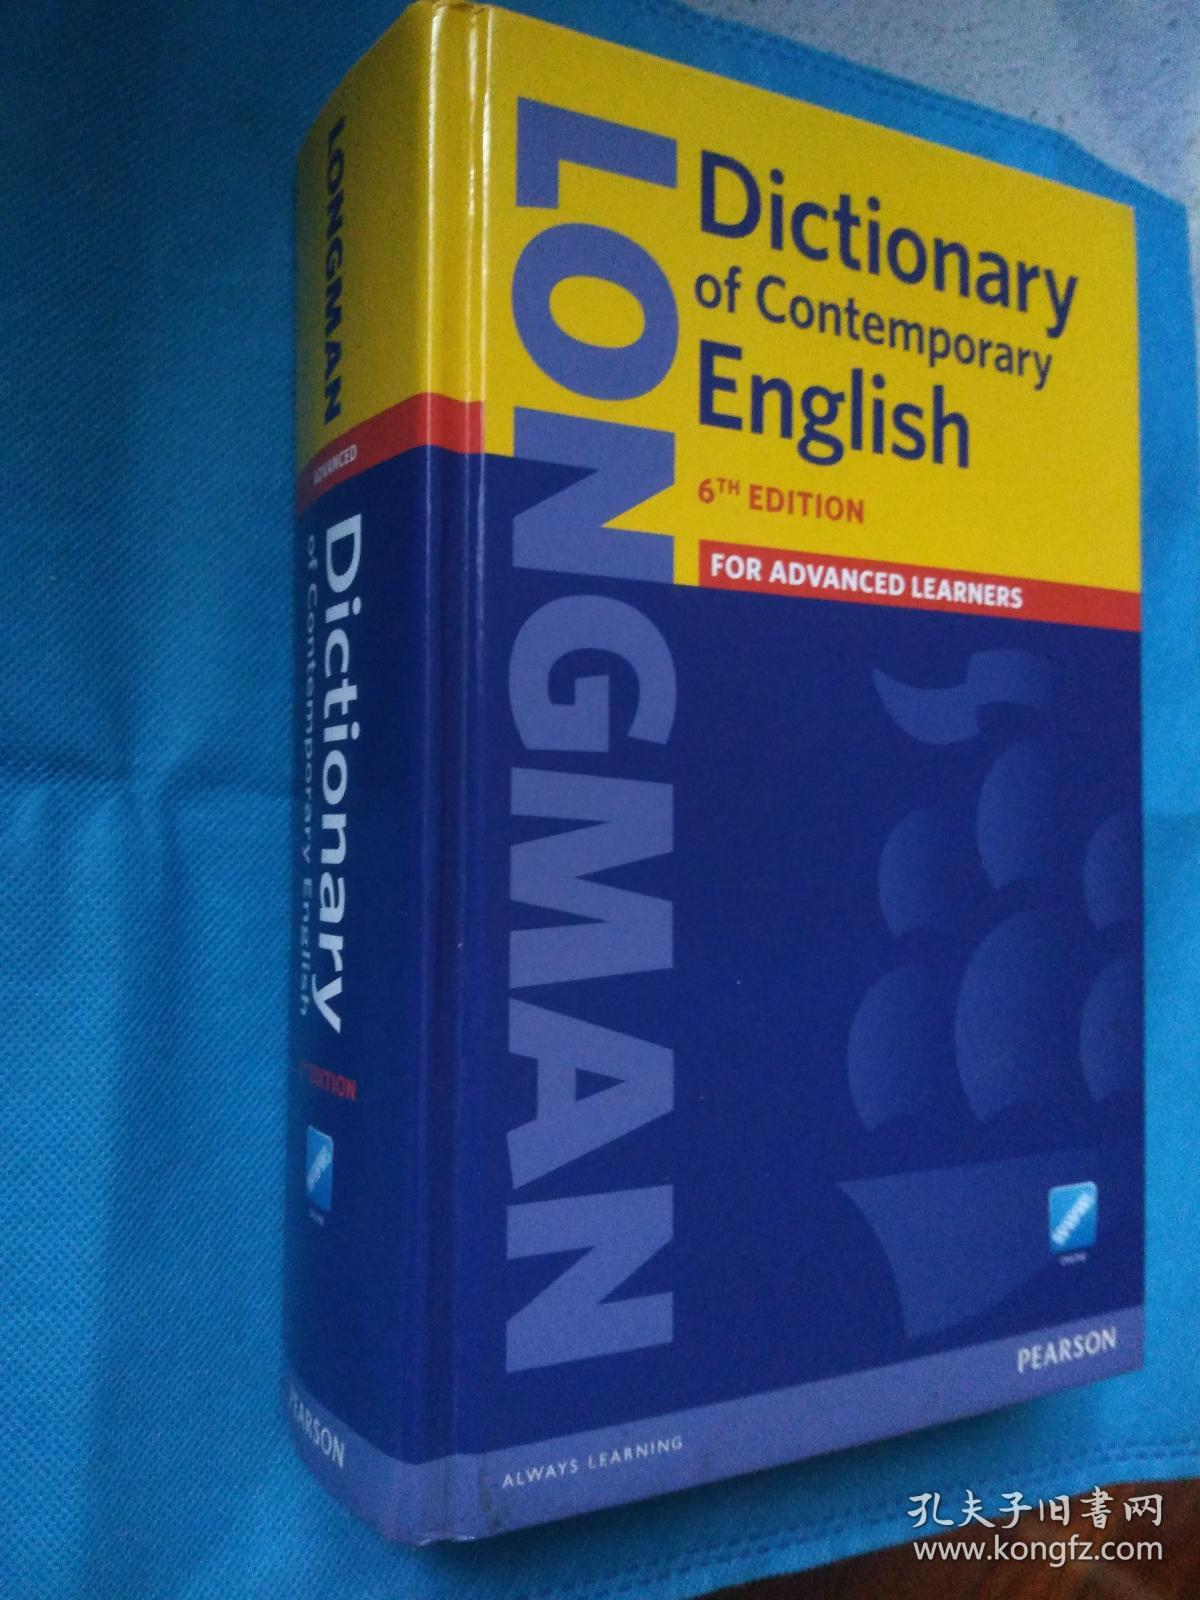 Longman Dictionary of Contemporary English for Advanced Learners, 6th Edition (Sixth Edition 2014) 朗文当代英语词典 第六版 英文原版 精装本